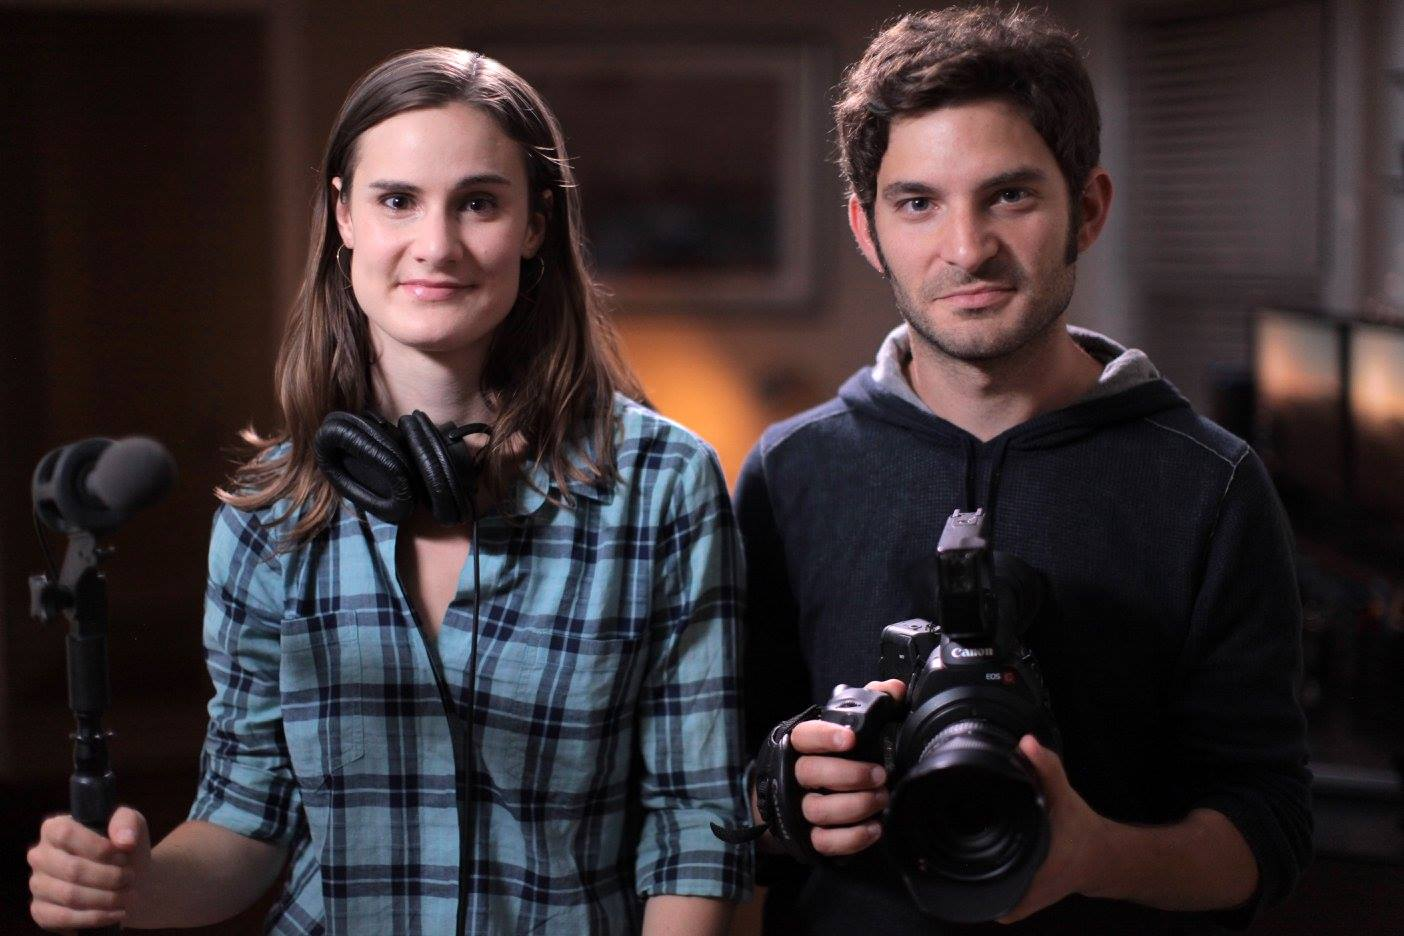 The Filmmakers, Matt Wechsler and Annie Speicher